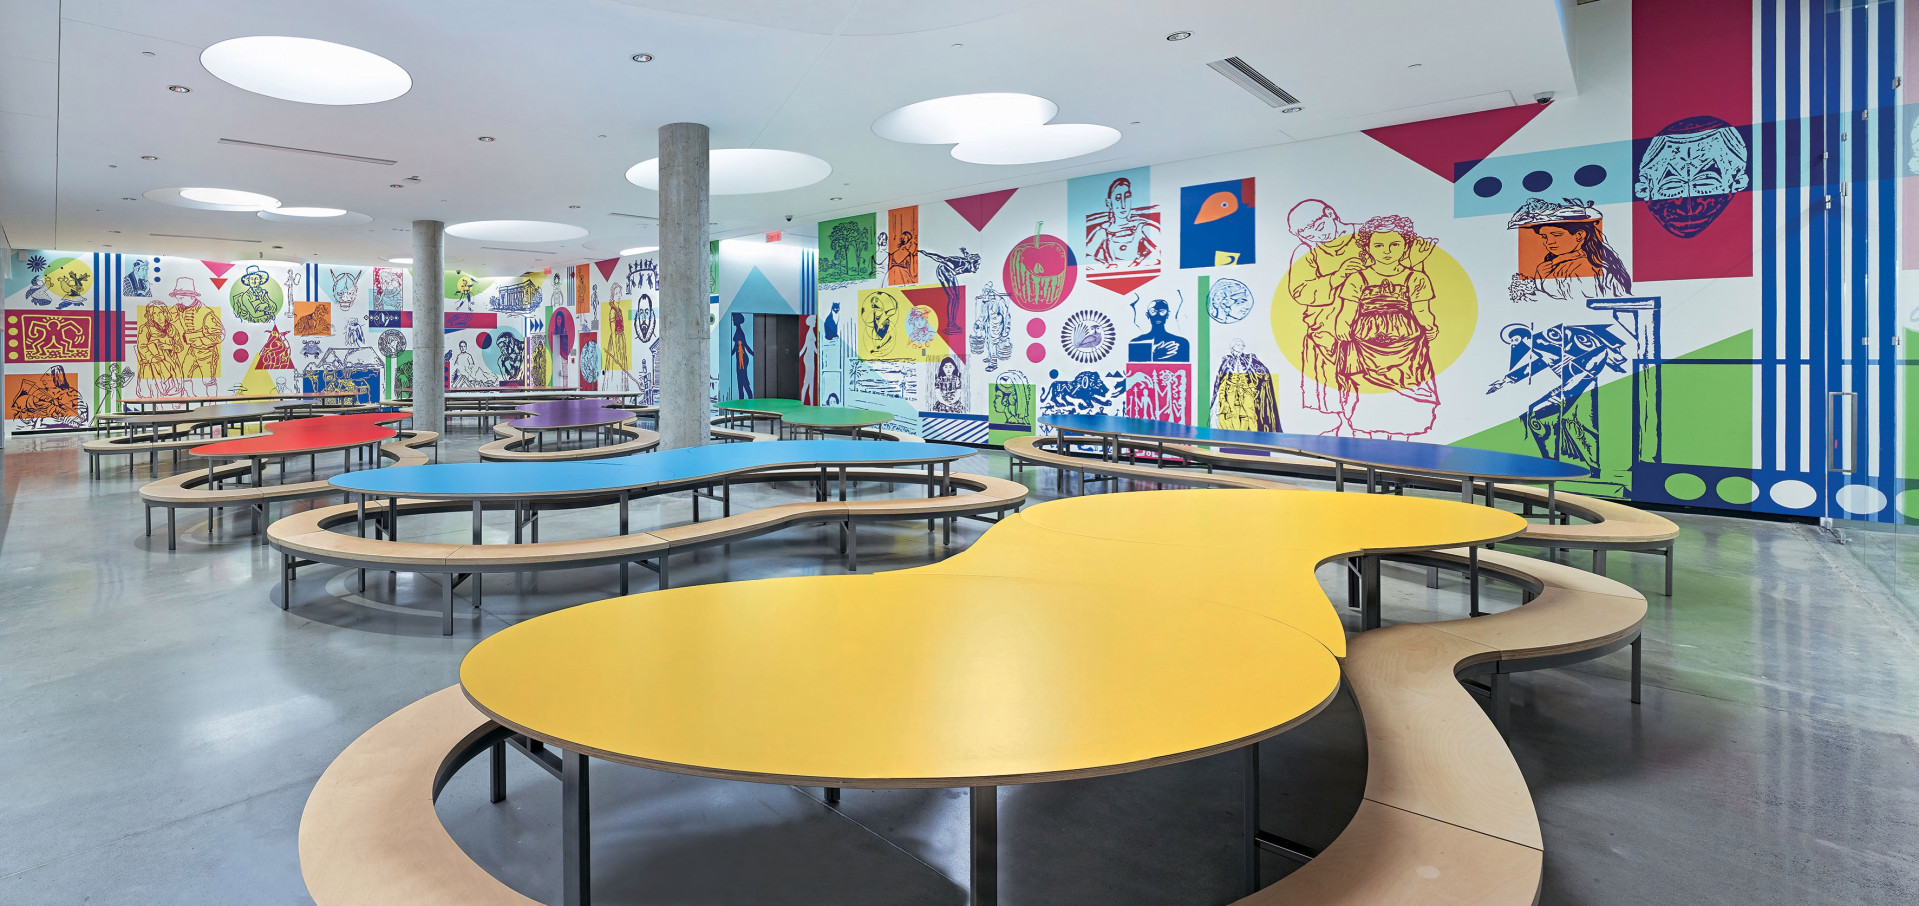 The Montreal Museum of Fine Arts: Rainbow Hall at the Michal and Renata Hornstein Pavilion for Peace, filled with murals by the art collective MU.Marc Cramer (Image via Fortune Magazine)